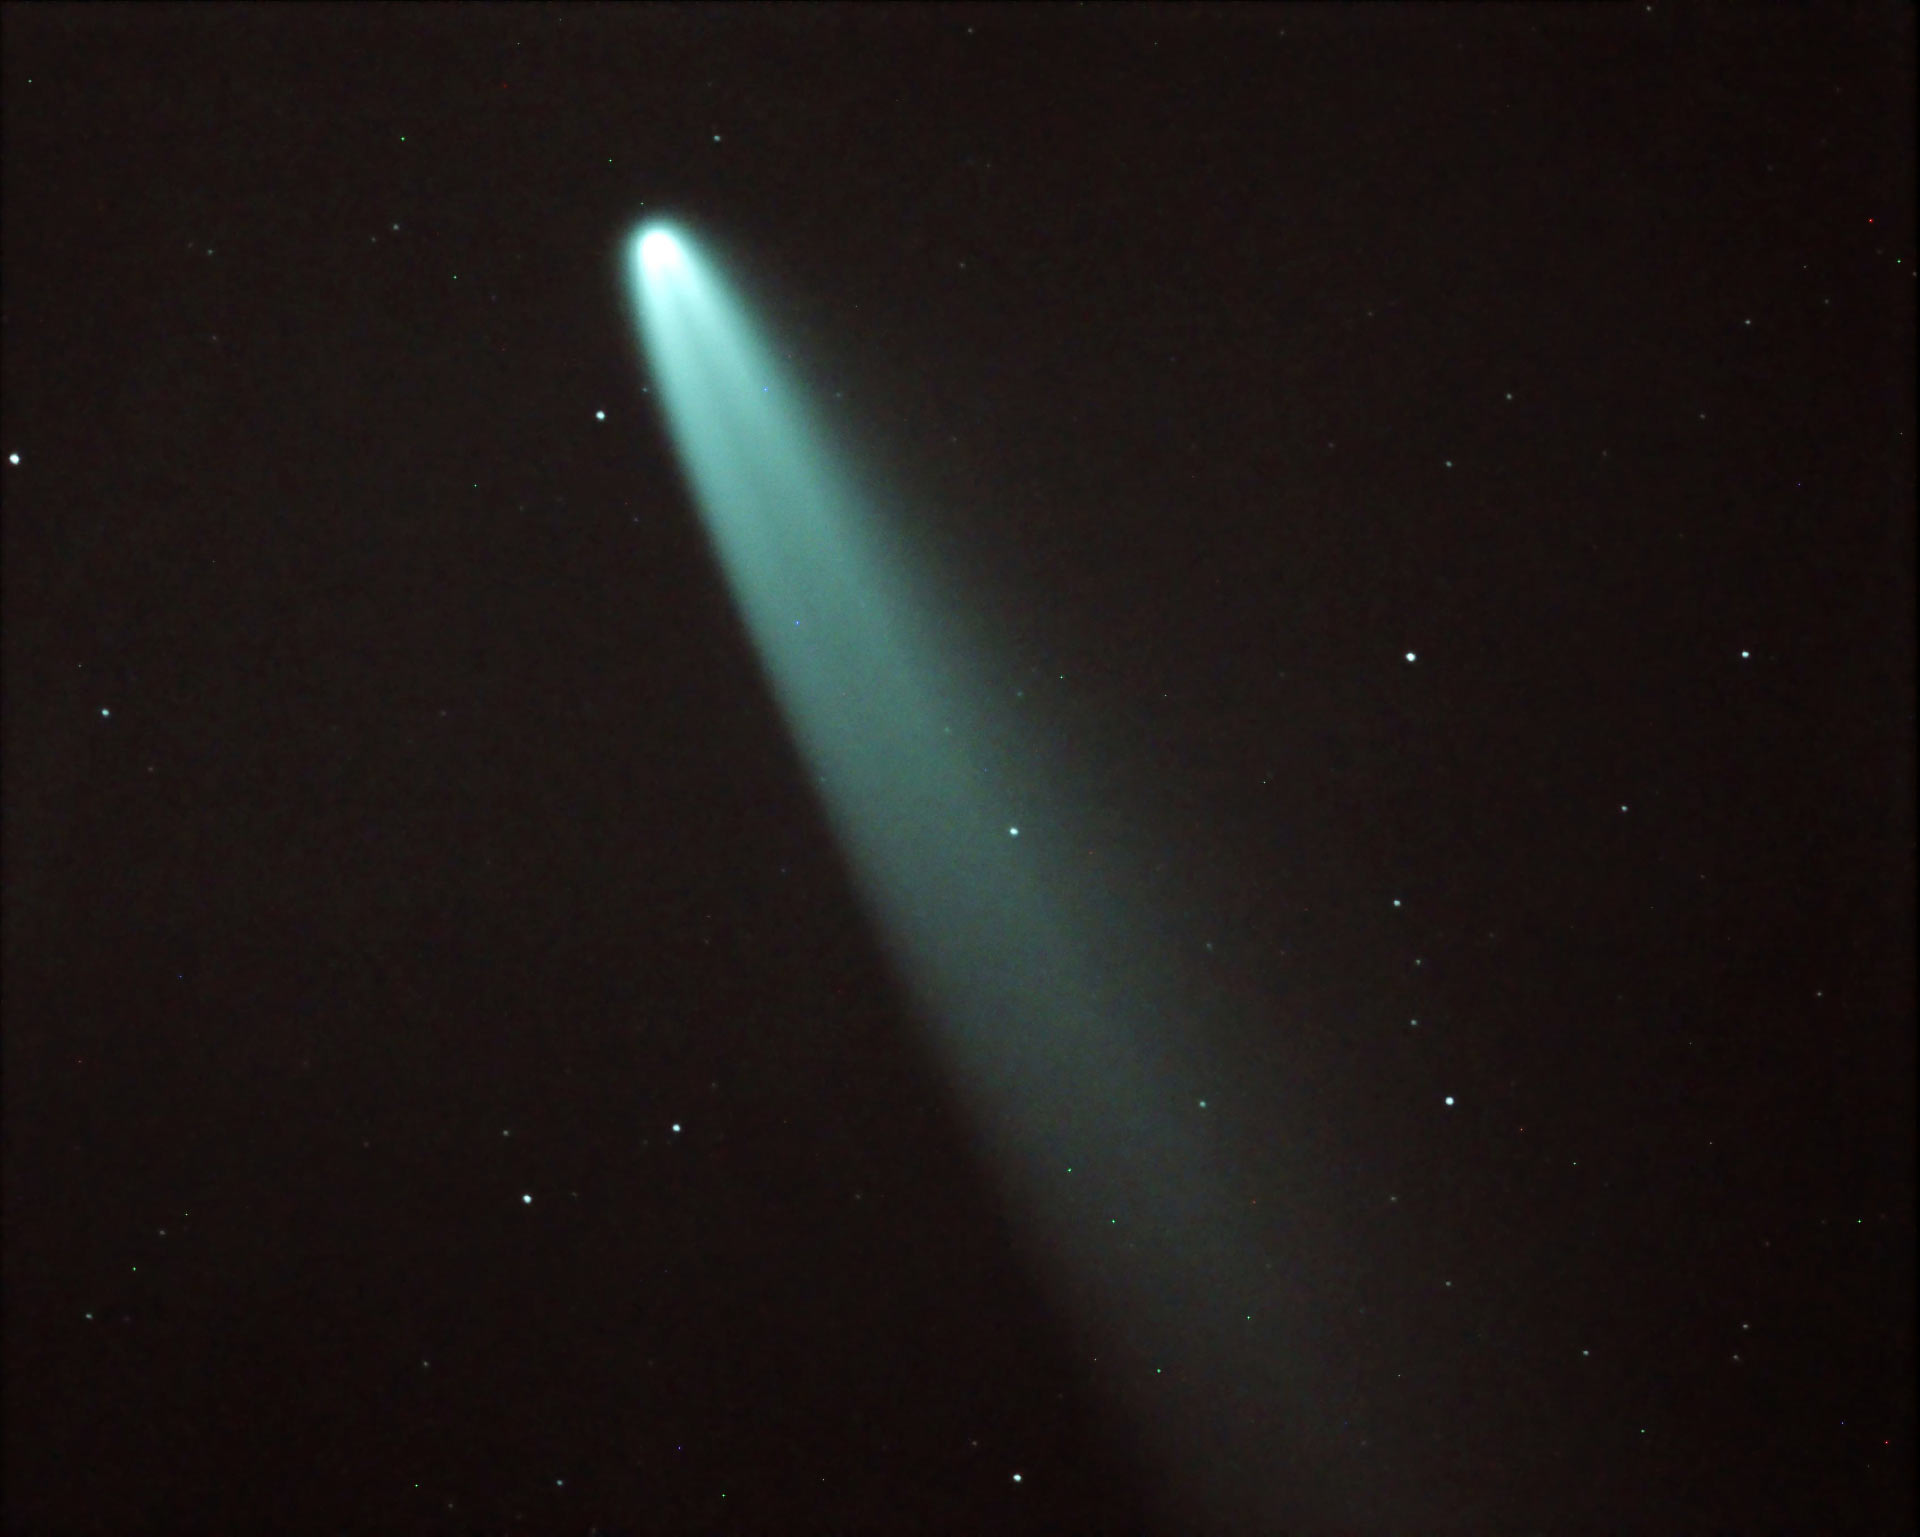 Comet Neowise: Astronomer's images of comet over Norfolk